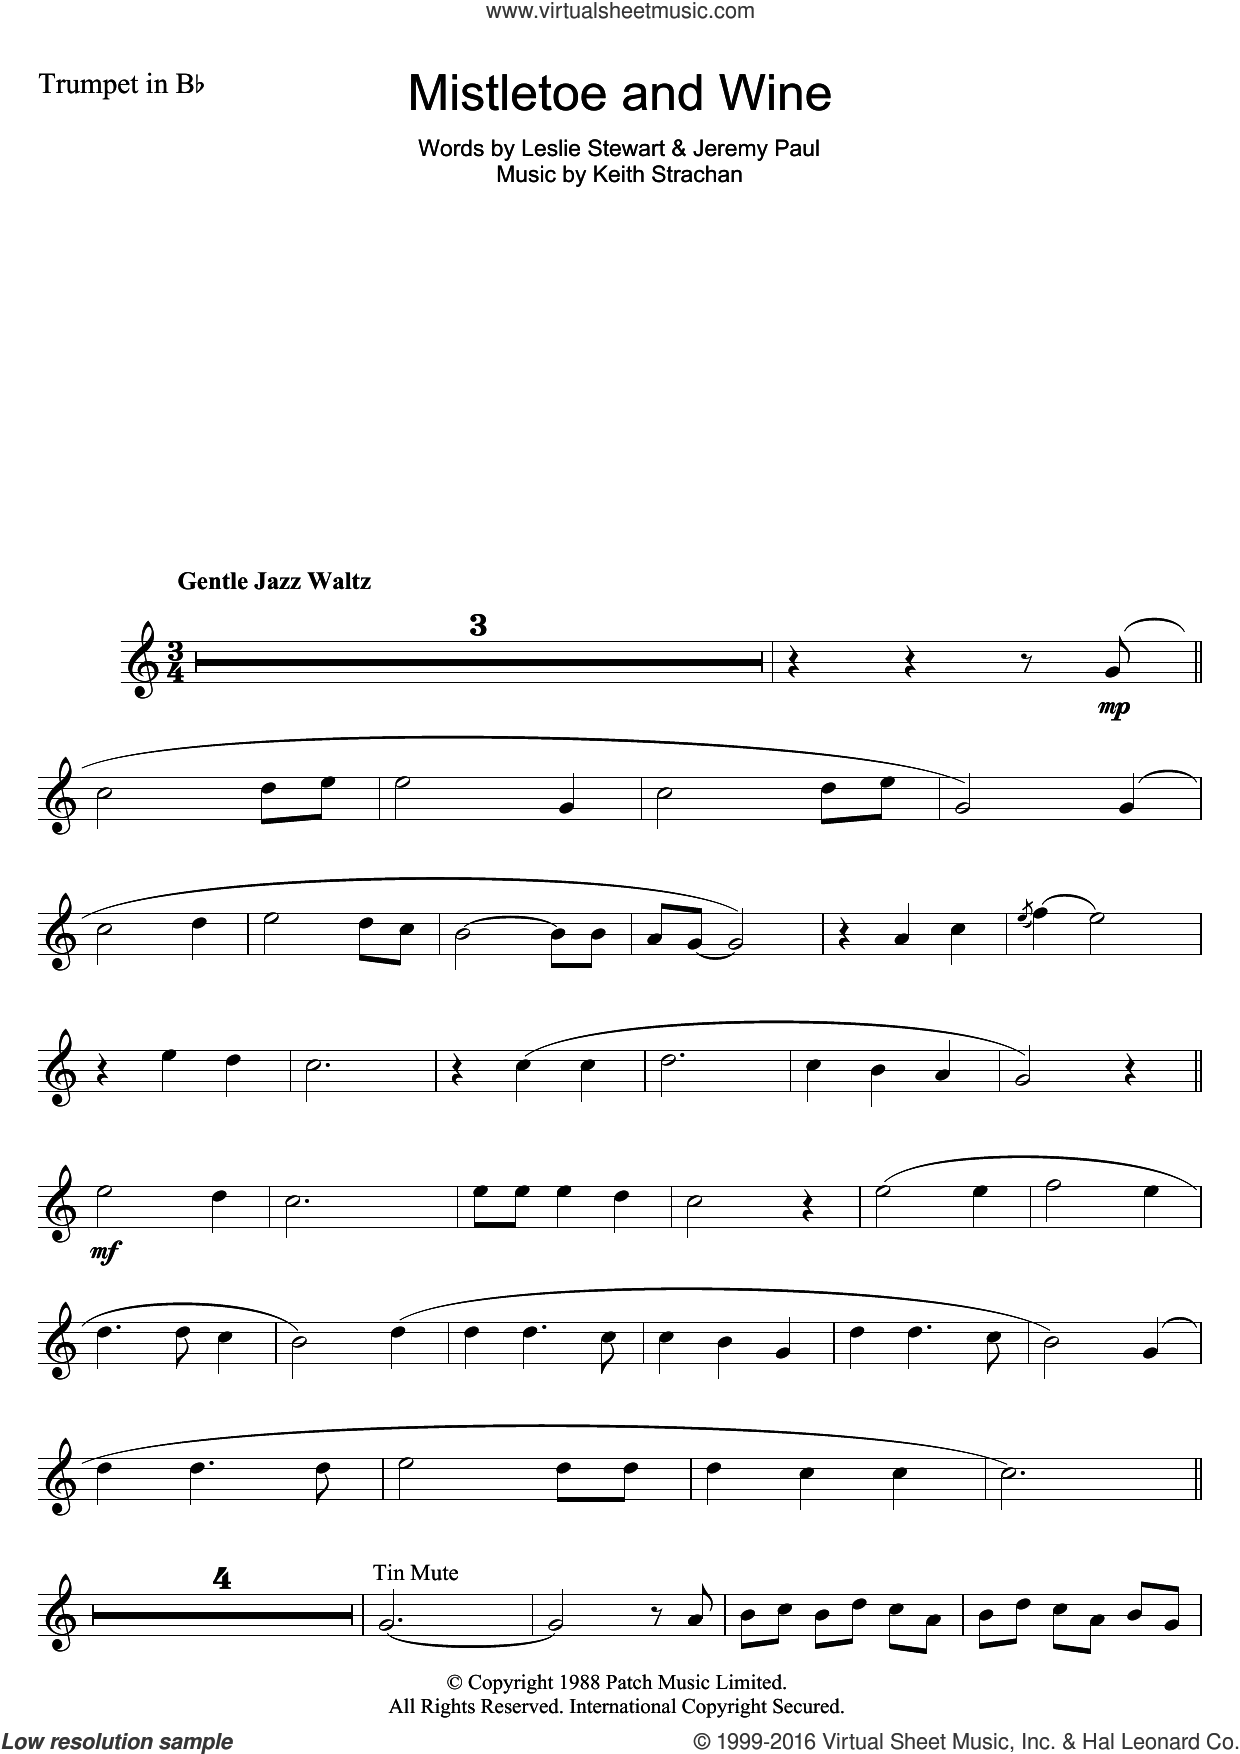 Mistletoe And Wine sheet music for trumpet solo by Cliff Richard, Jeremy Paul, Keith Strachan and Leslie Stewart, intermediate skill level